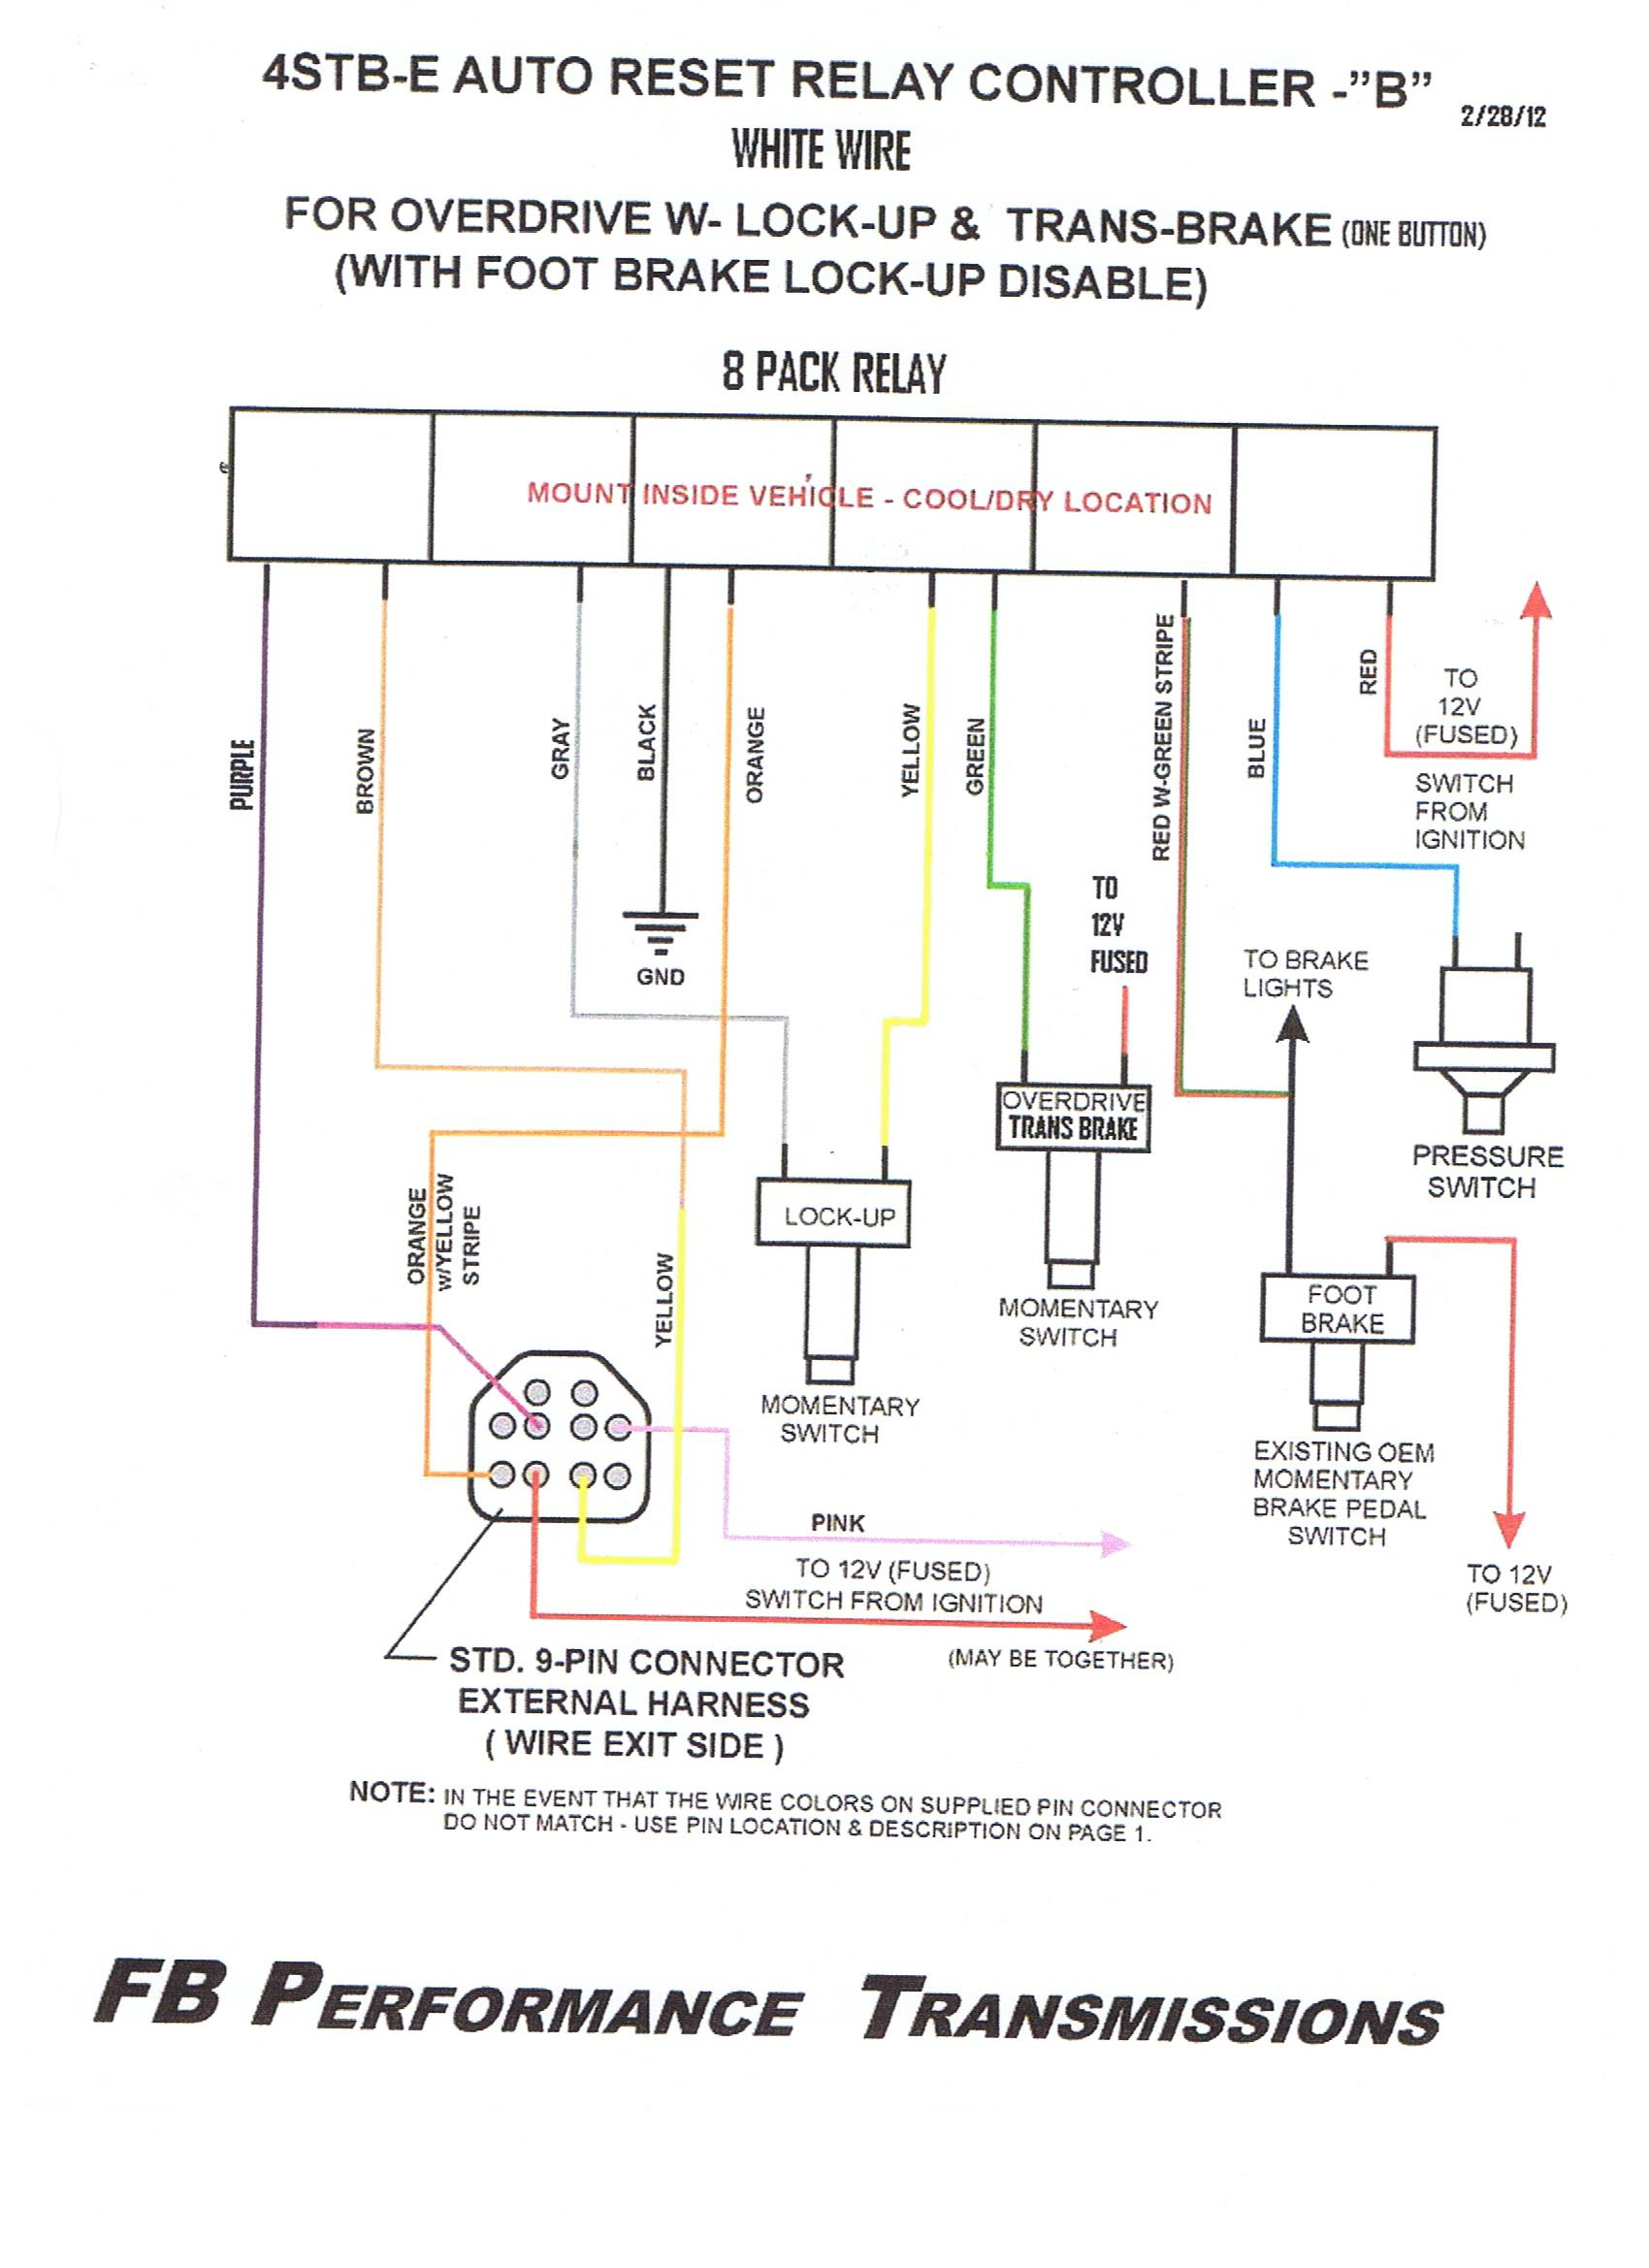 8 parking sensor wiring diagram Download-WIRING and Operation 9 pin Feb 2012 19-f